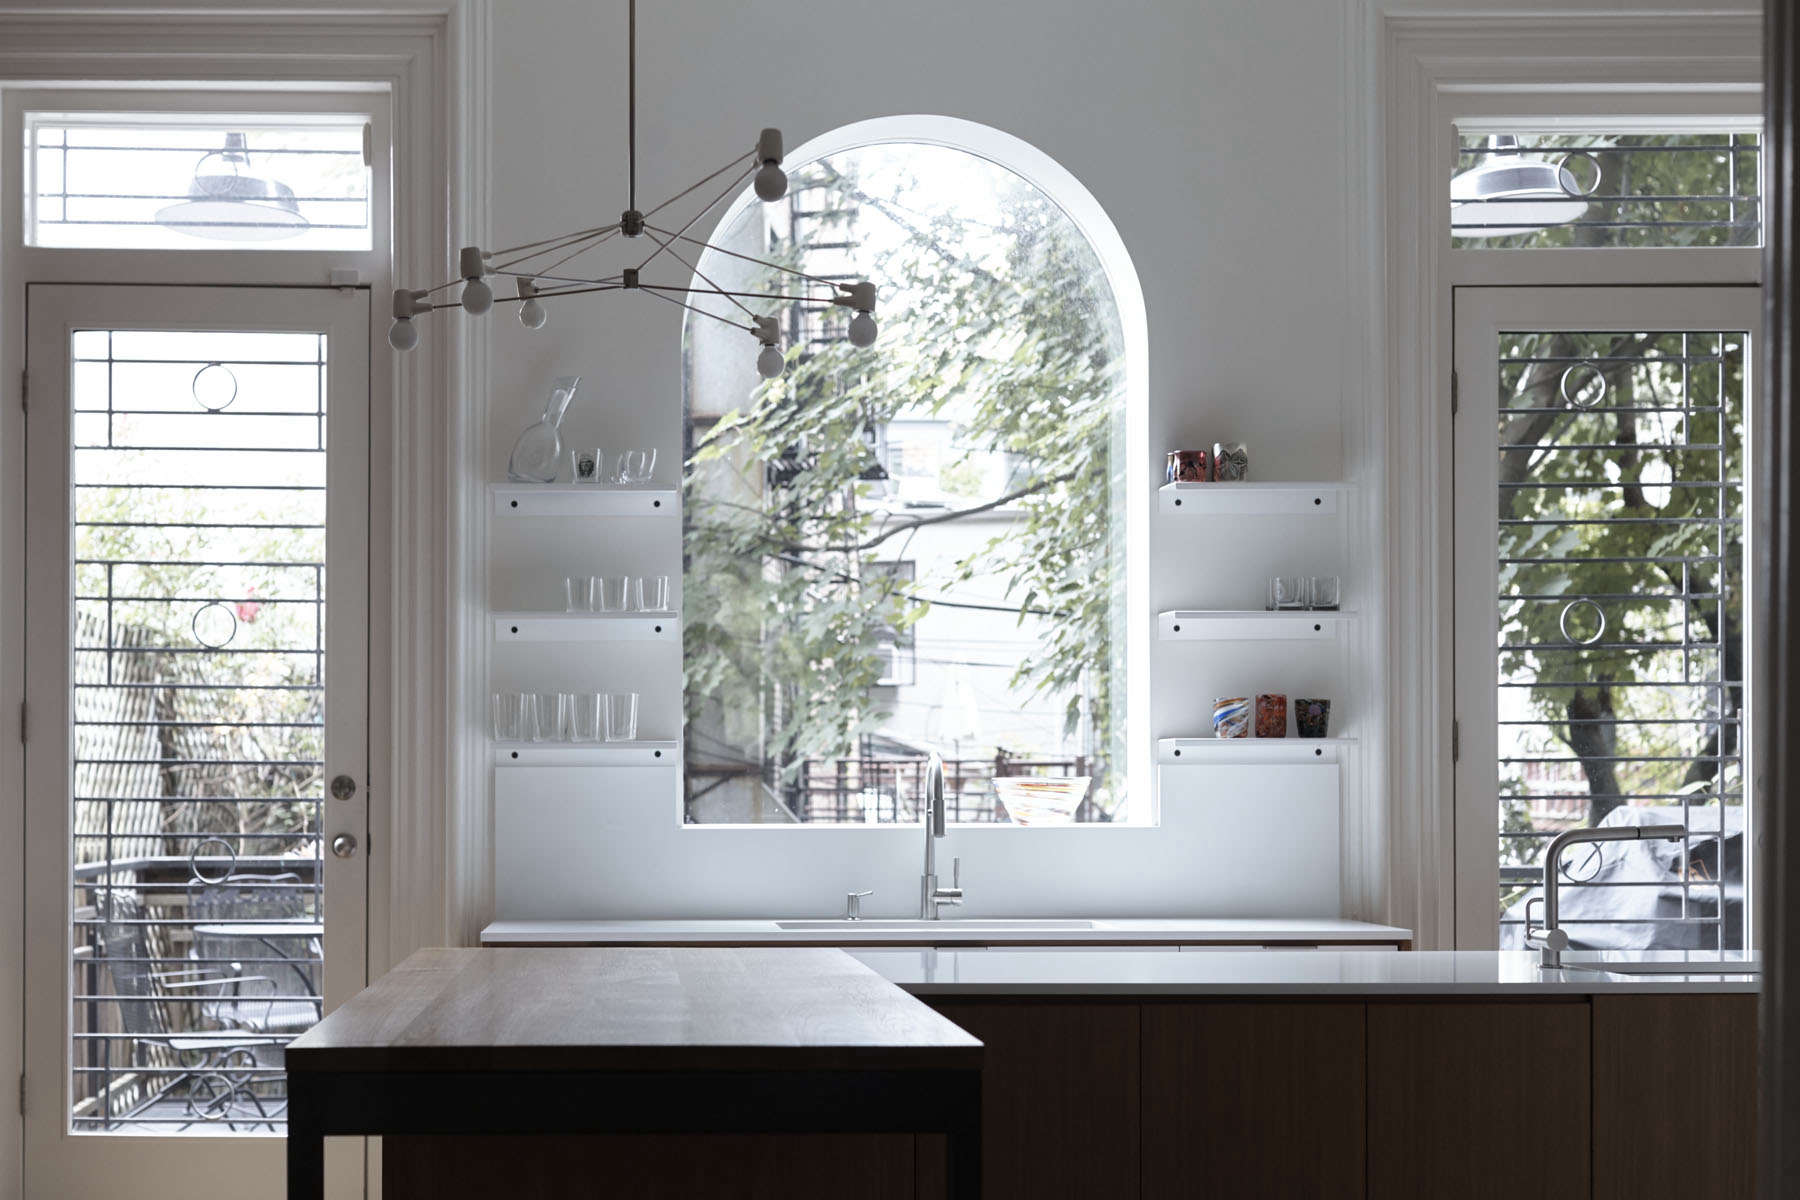 the existing arched window over the sink was opened upto create a big view of 11